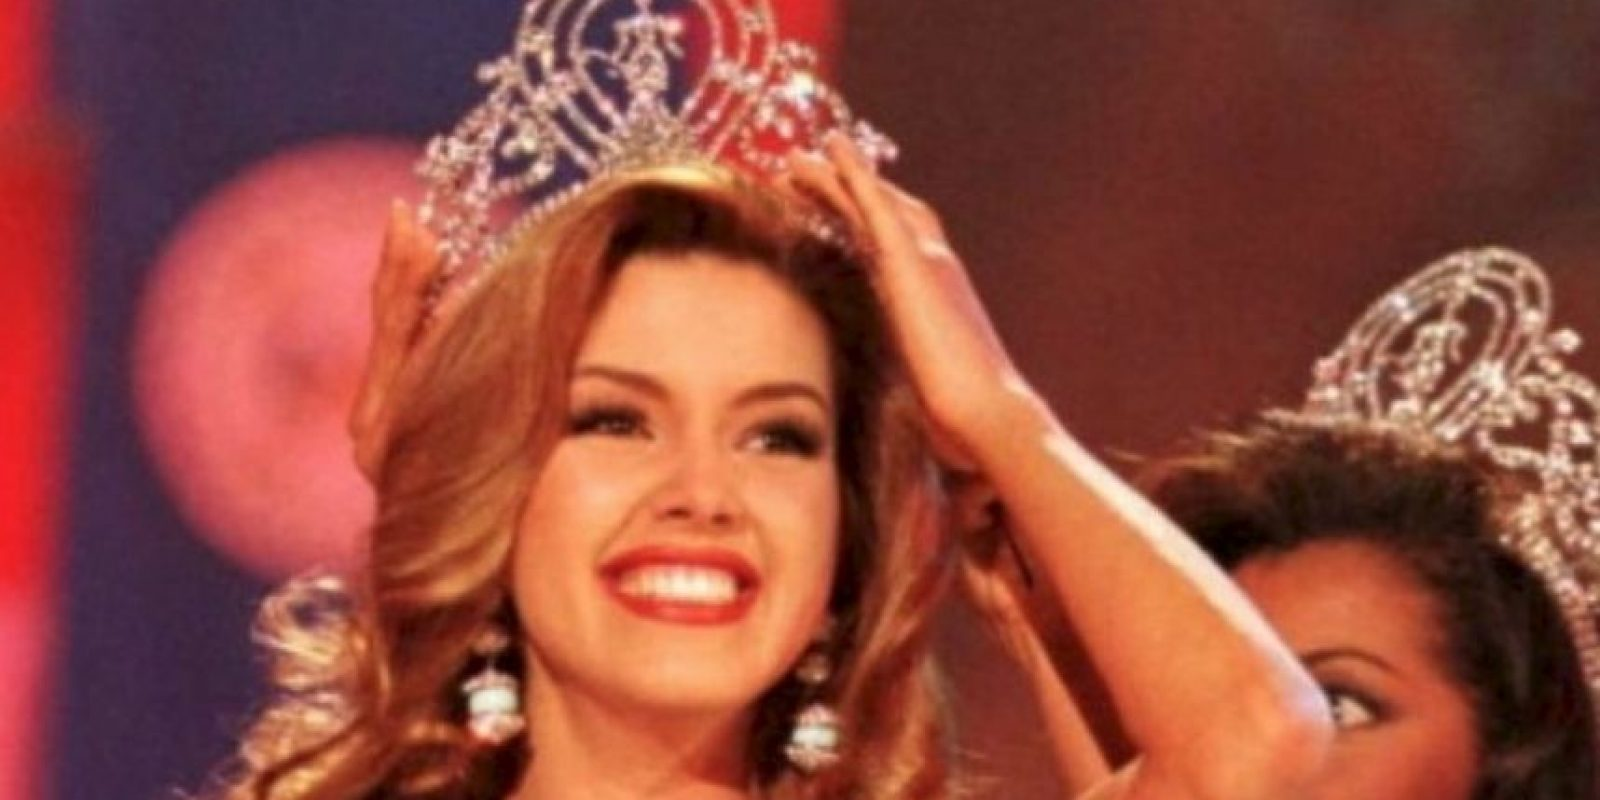 Alicia Machado ganó Miss Universo en 1996. Foto: Getty Images